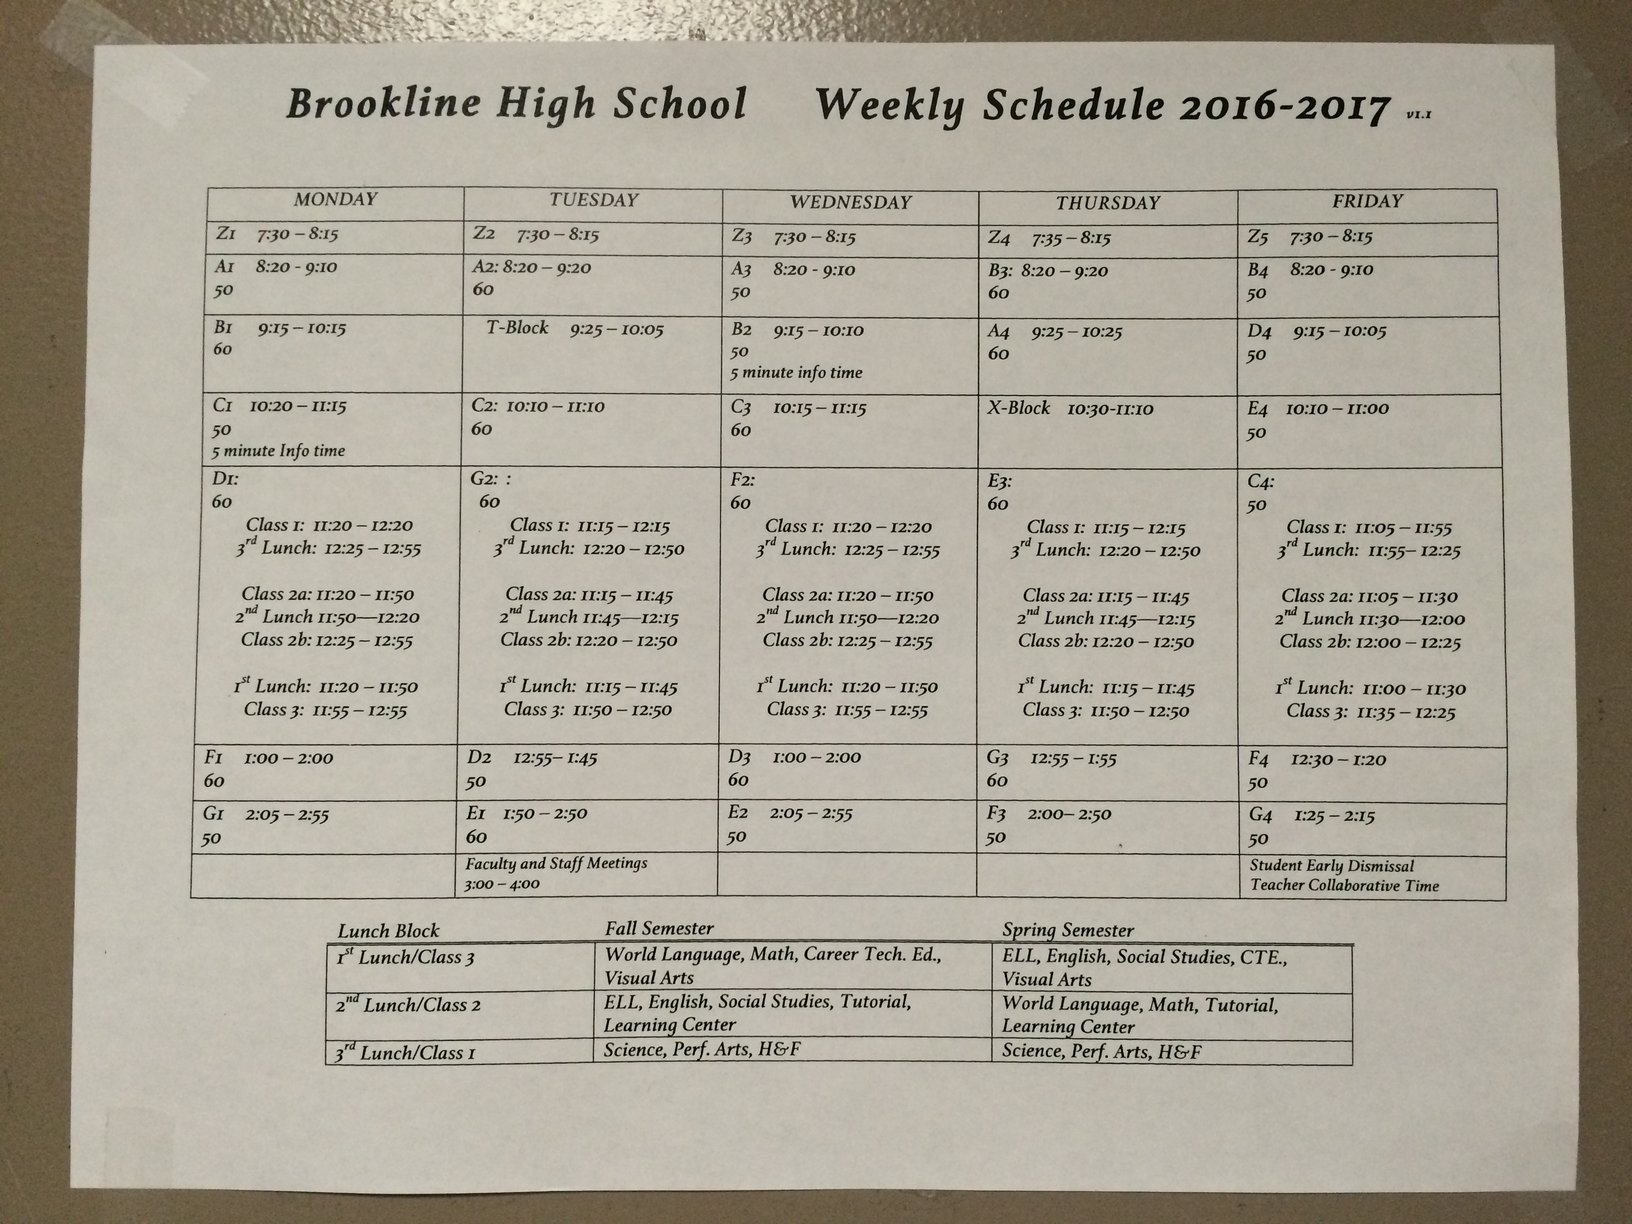 An example of the weekly schedule is displayed. Scheduling issues are common at the beginning of the year.